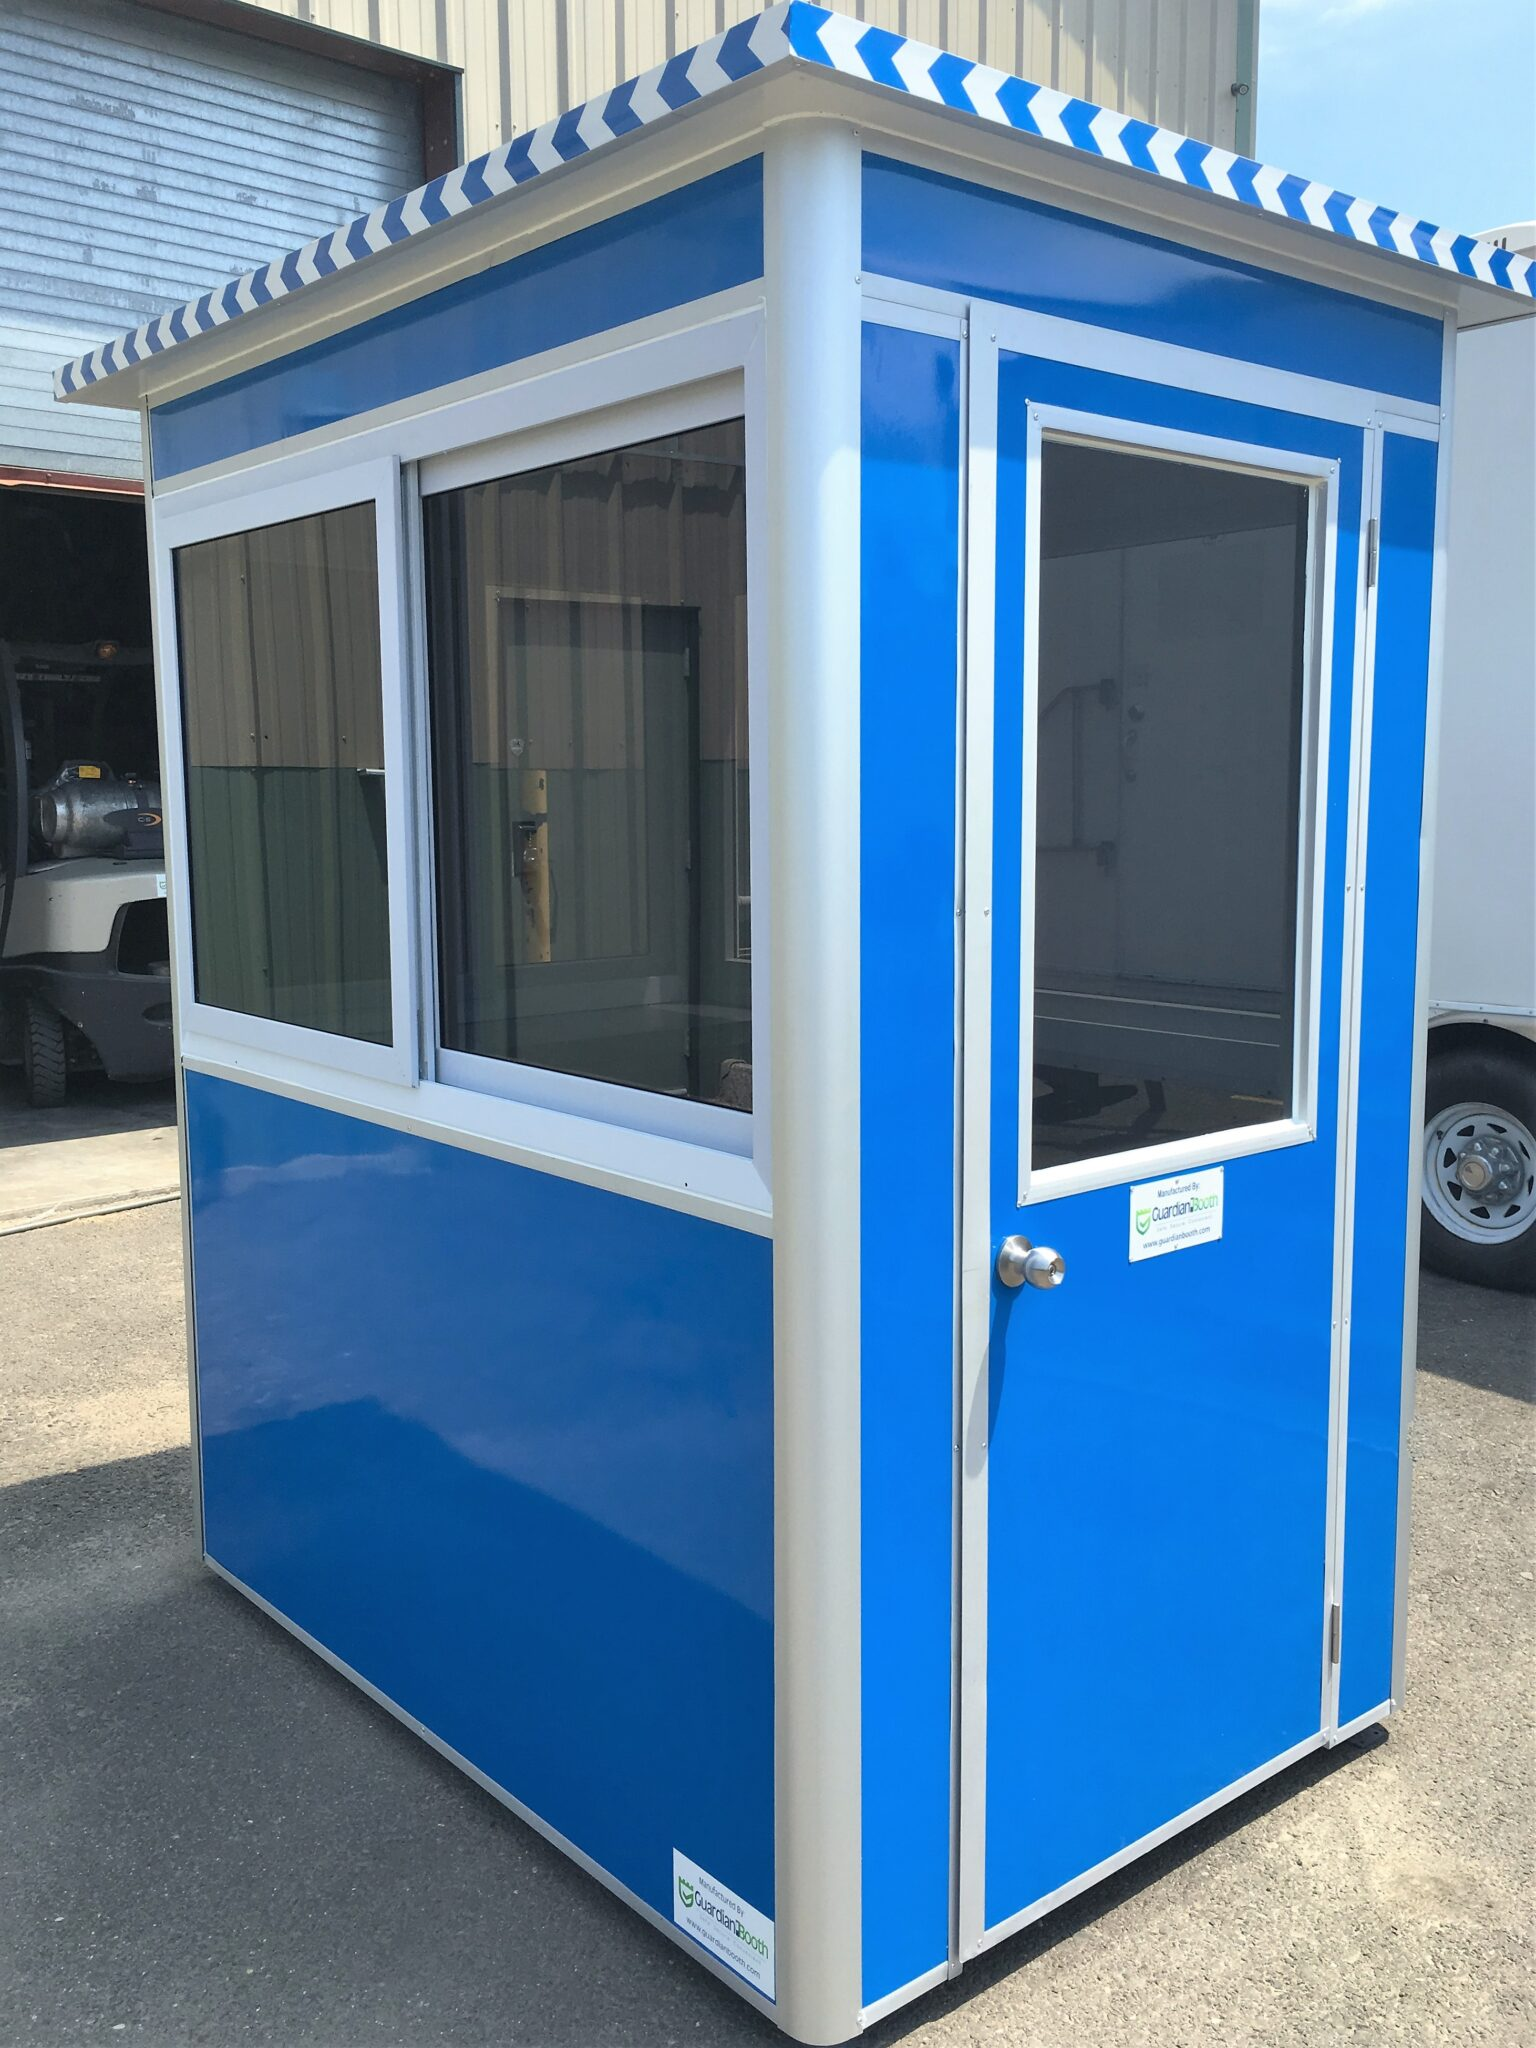 4x6 Parking Booth in Berkeley, CA with Tinted Windows, Swing Door, and Breaker Panel Box